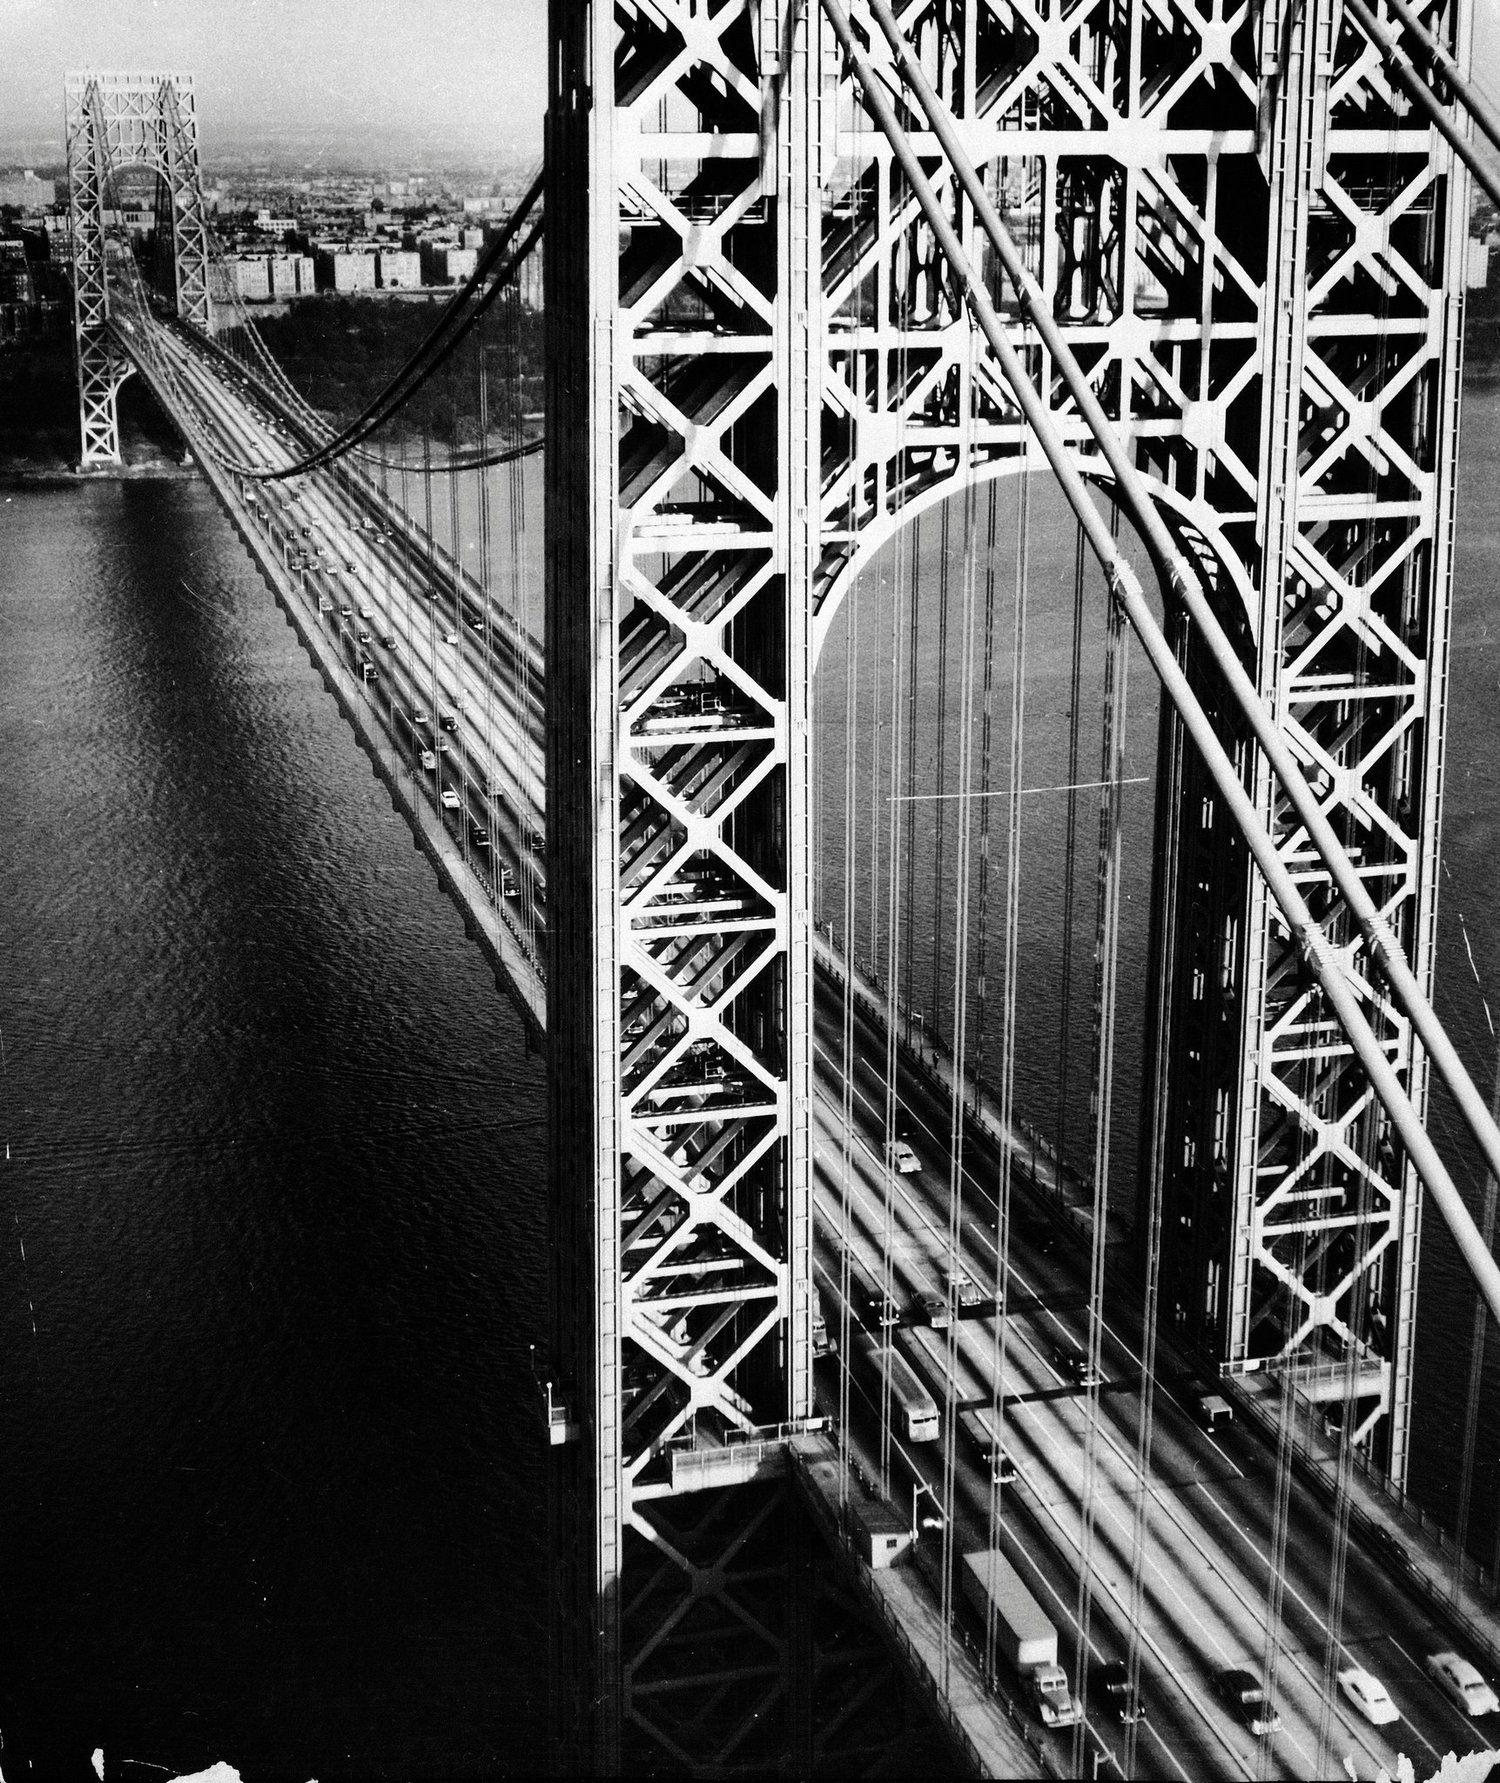 A view from a helicopter overlooking the George Washington Bridge in 1951.